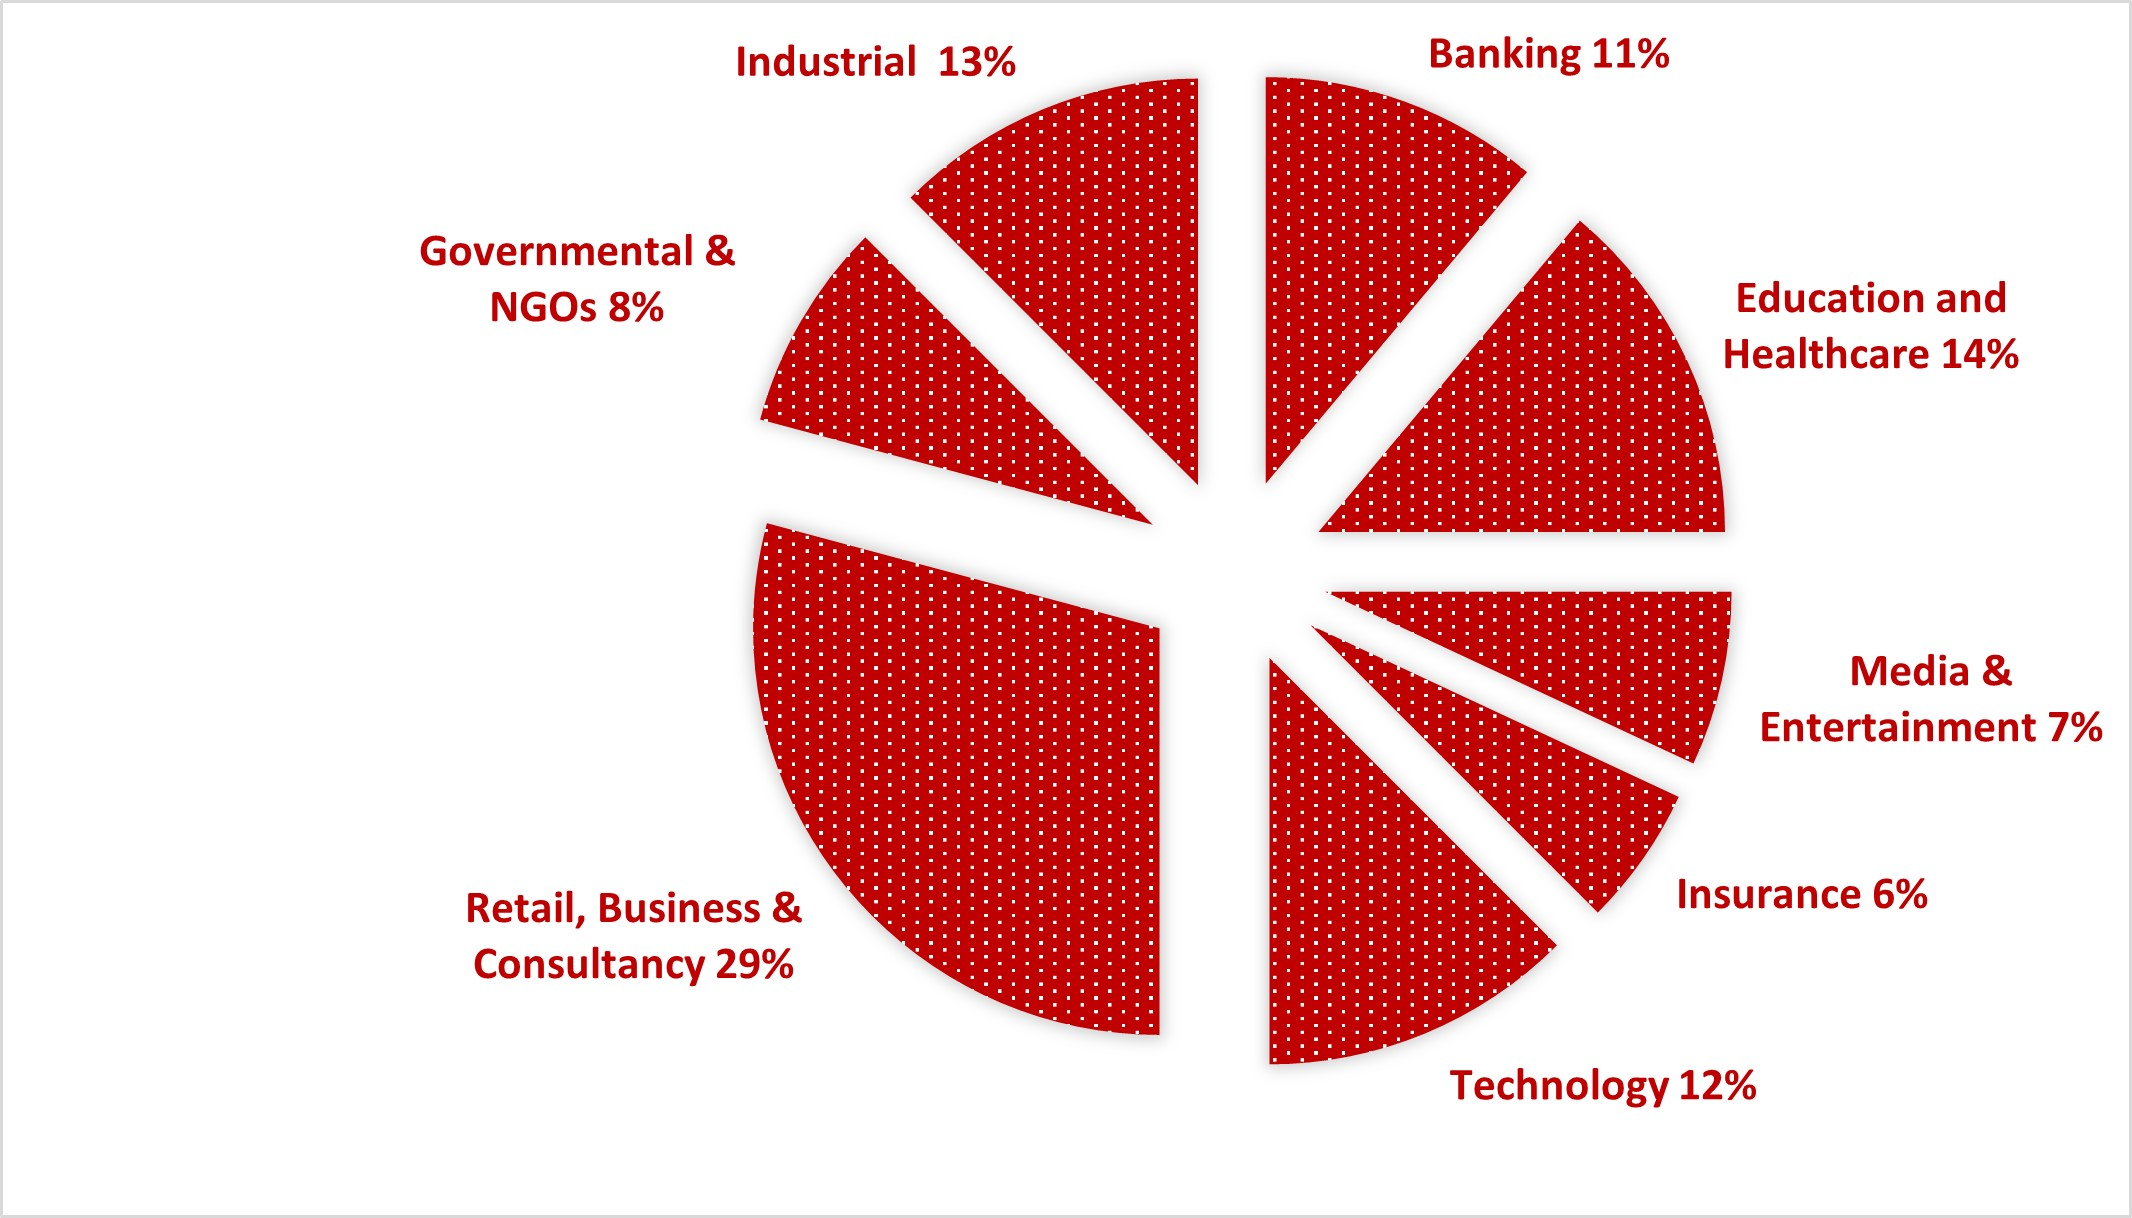 Distribution of the Vulnerabilities Among Sectors